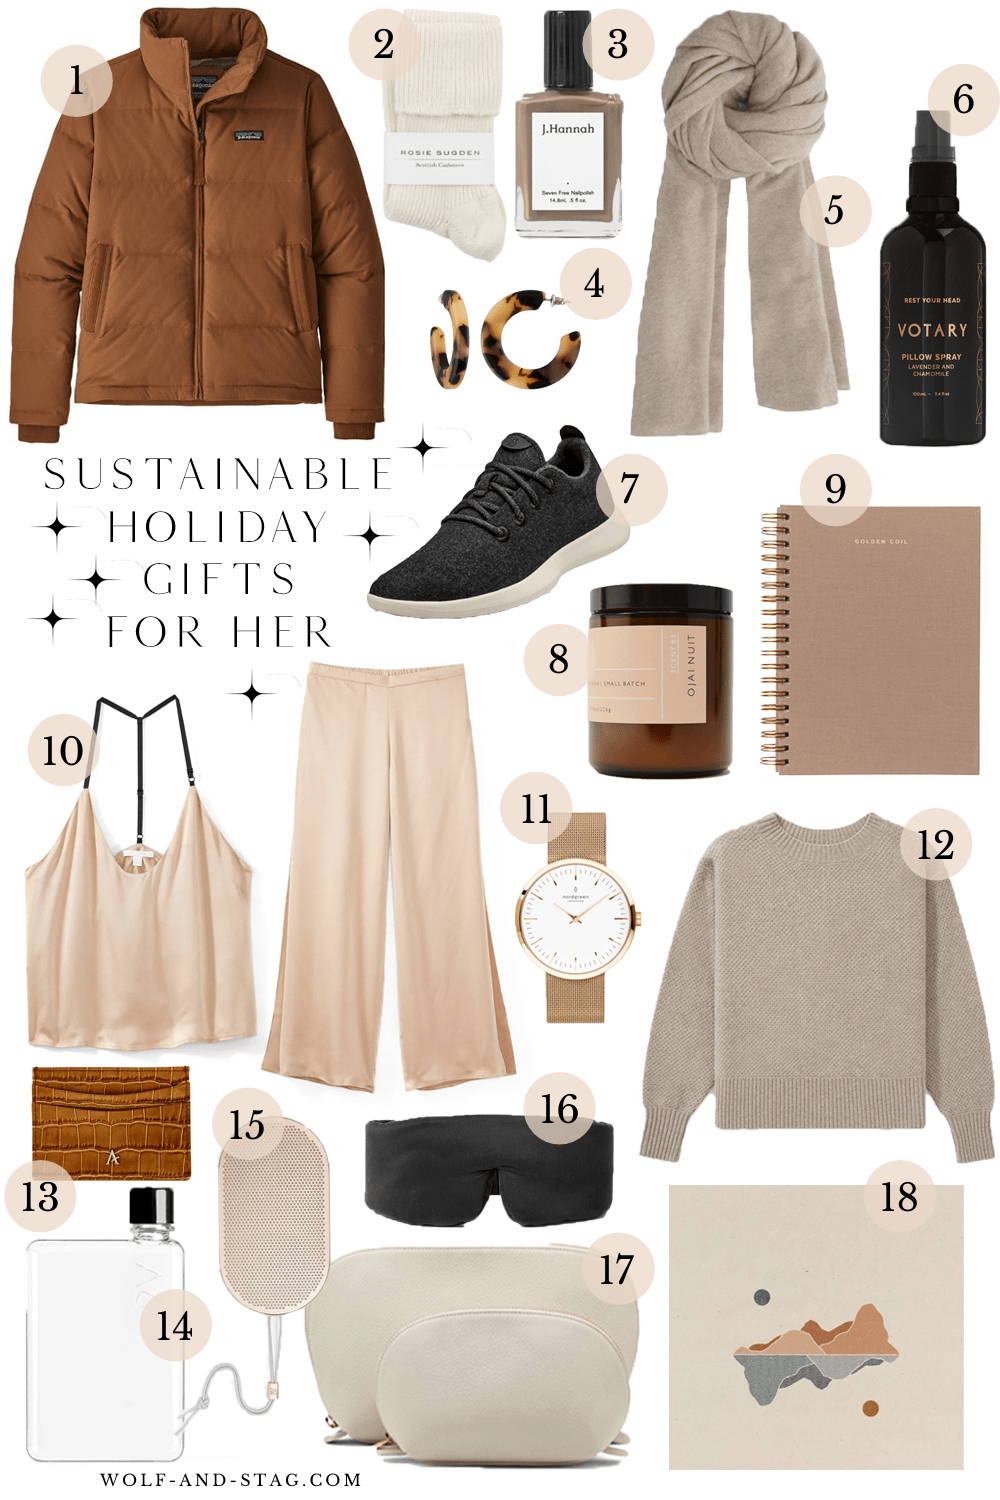 A roundup of the most sustainable, ethical, or eco-friendly holiday gifts for her, in a neutral color palette